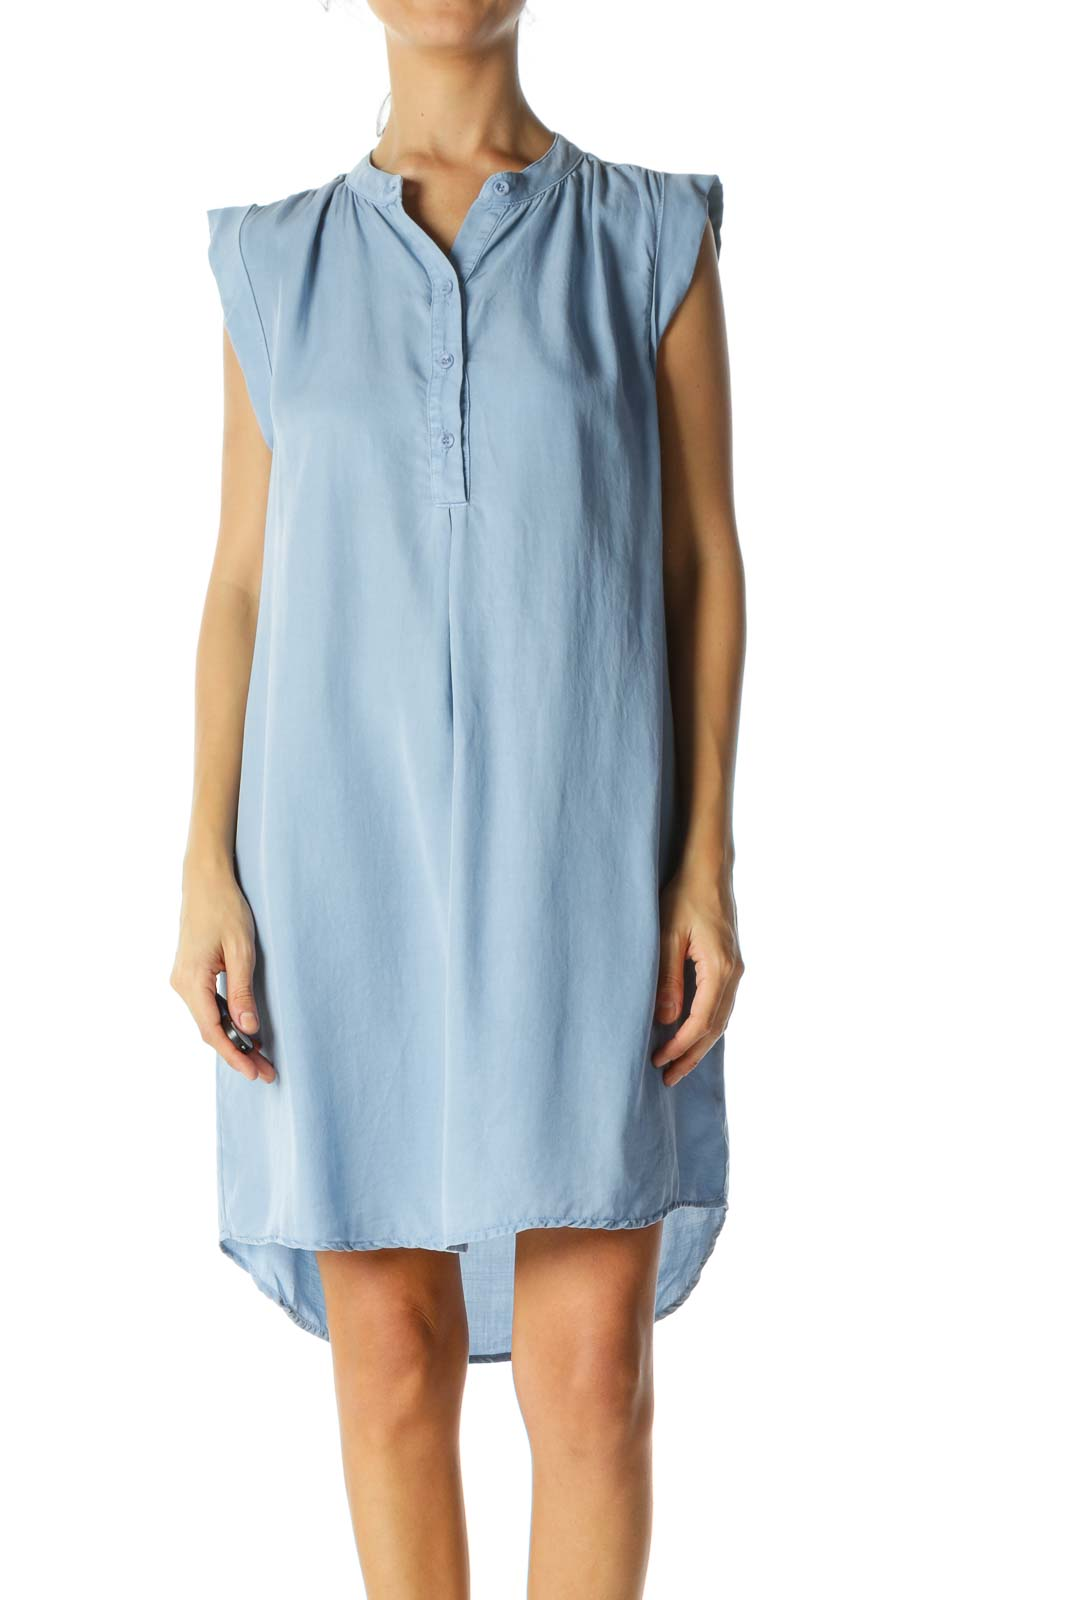 Light Blue Buttoned Sleeveless Shirt Dress Front